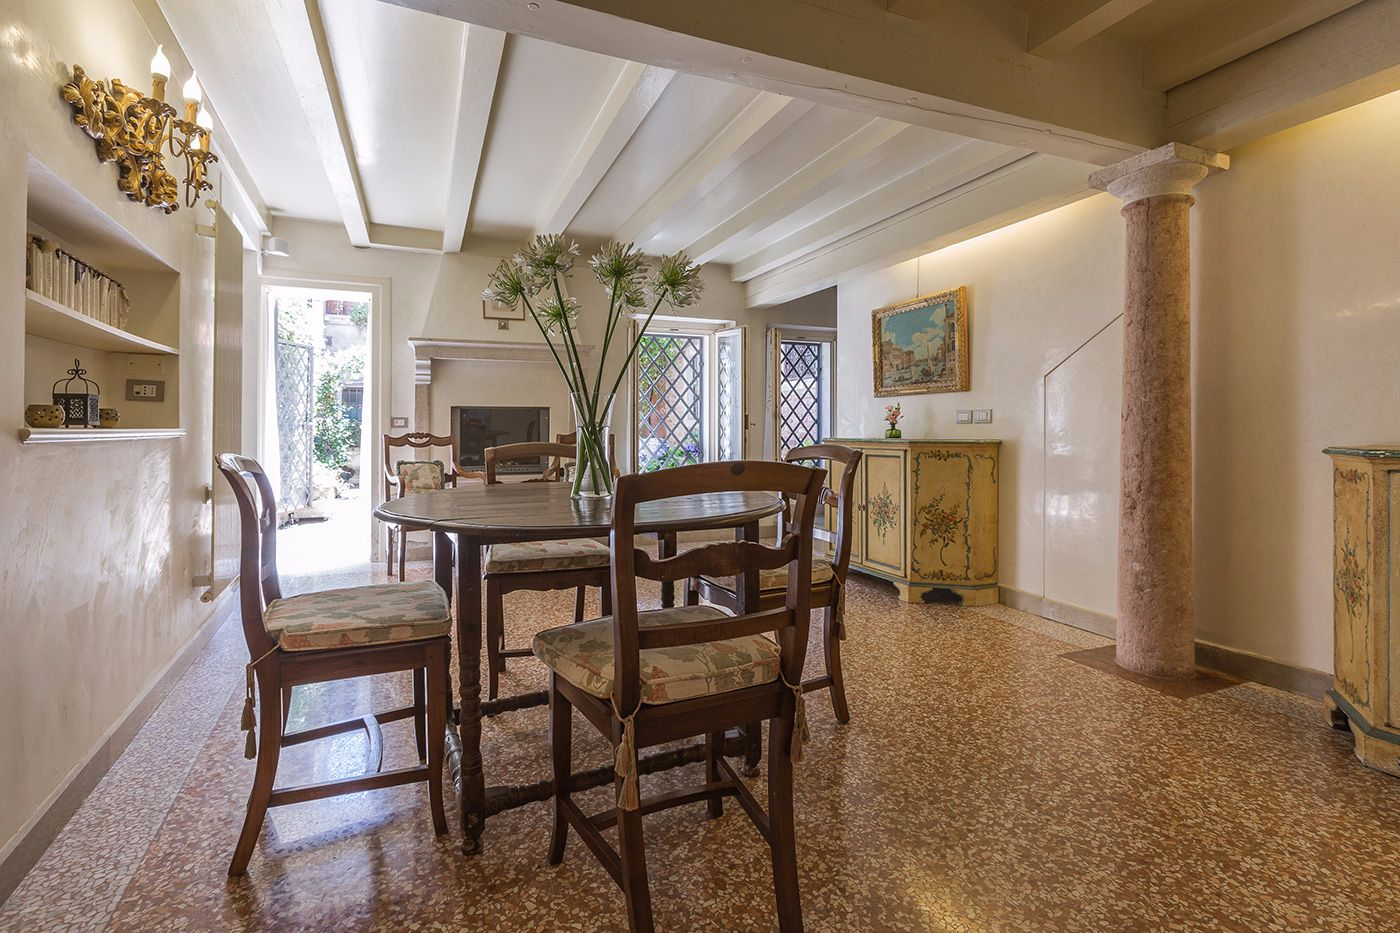 there is a spacious and elegant dining room that connects the entrance to the kitchen and courtyard